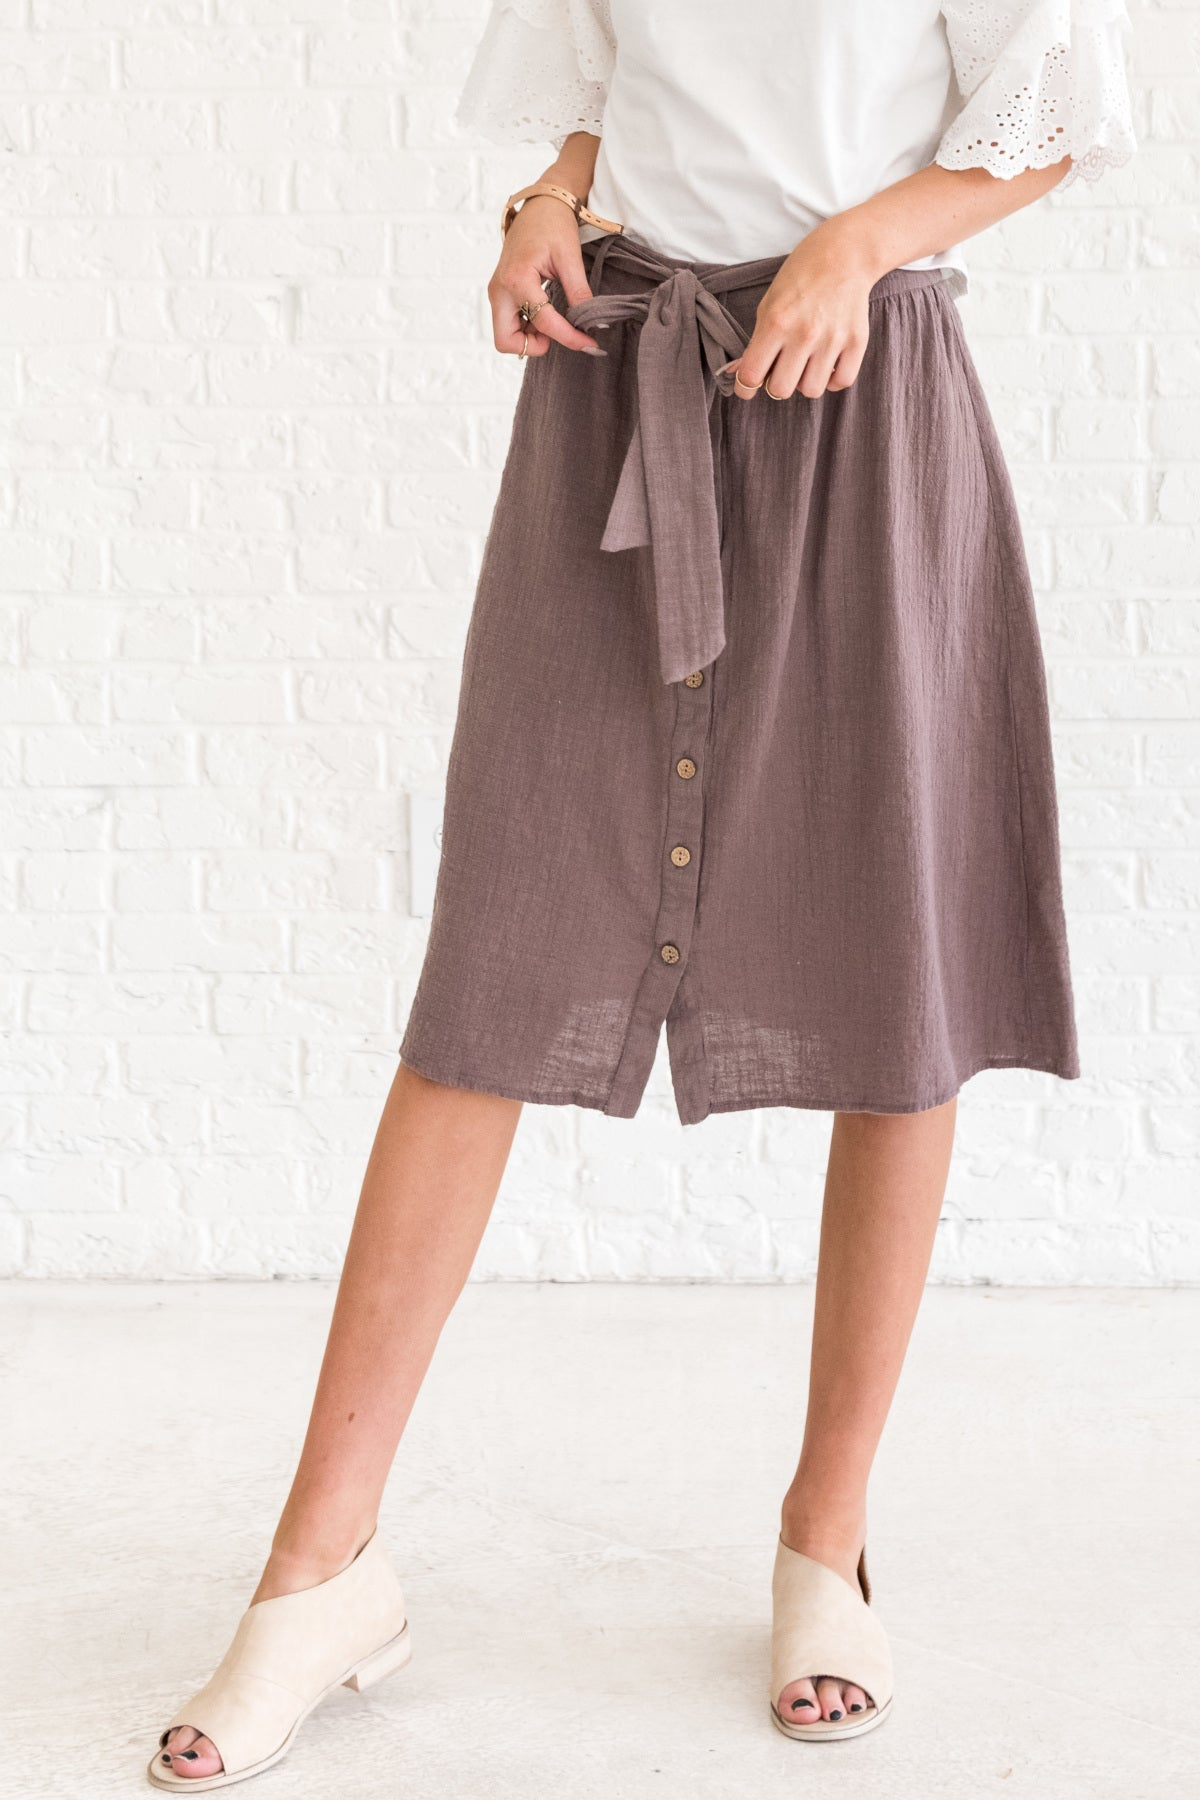 Brown Button-Up Knee-Length Skirts for Women